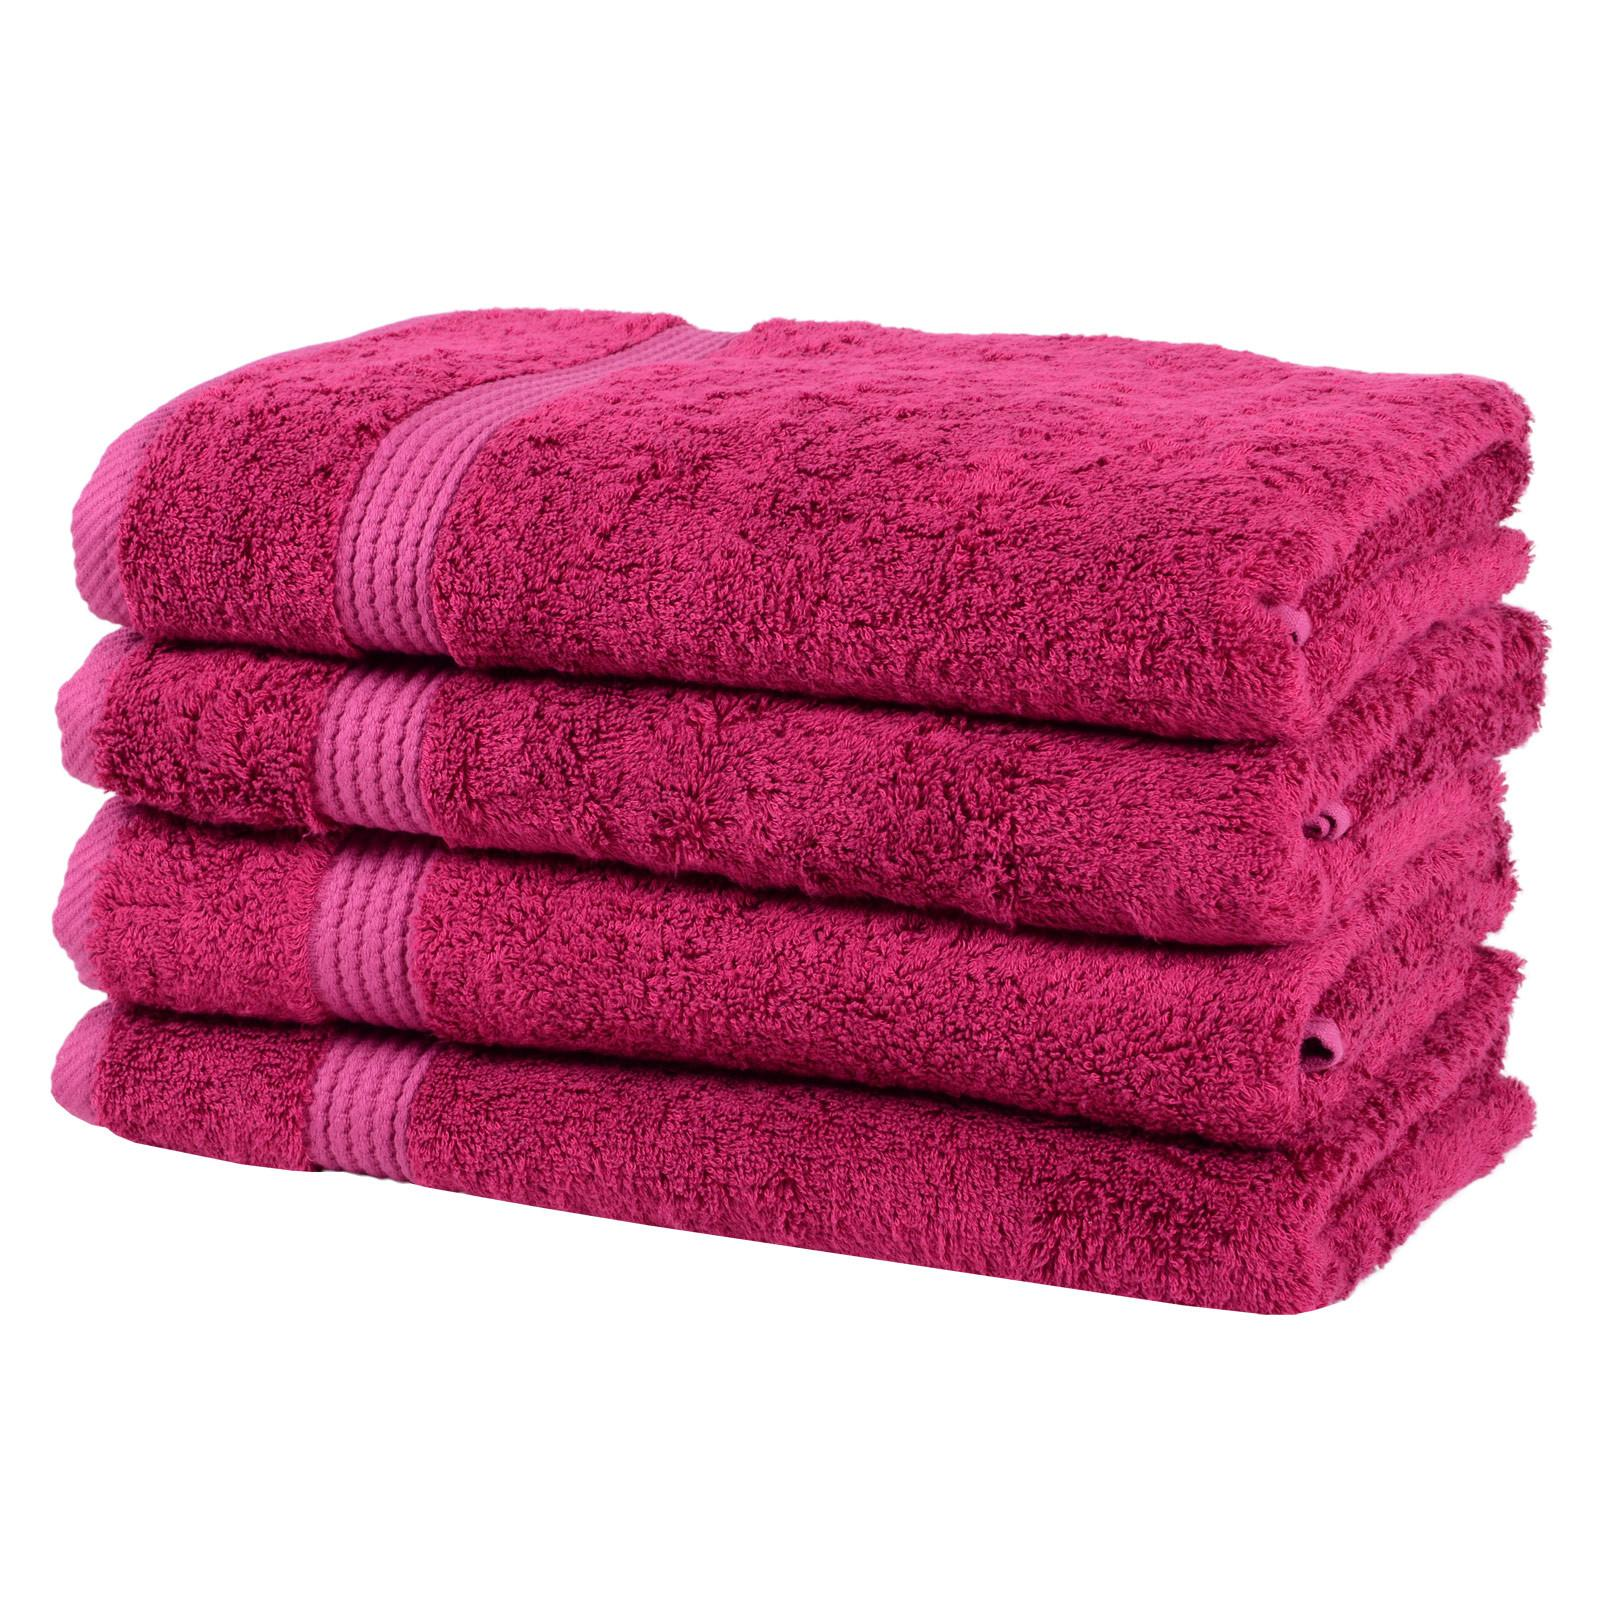 Bamboo Bliss Super Soft High Quality Hand Towels